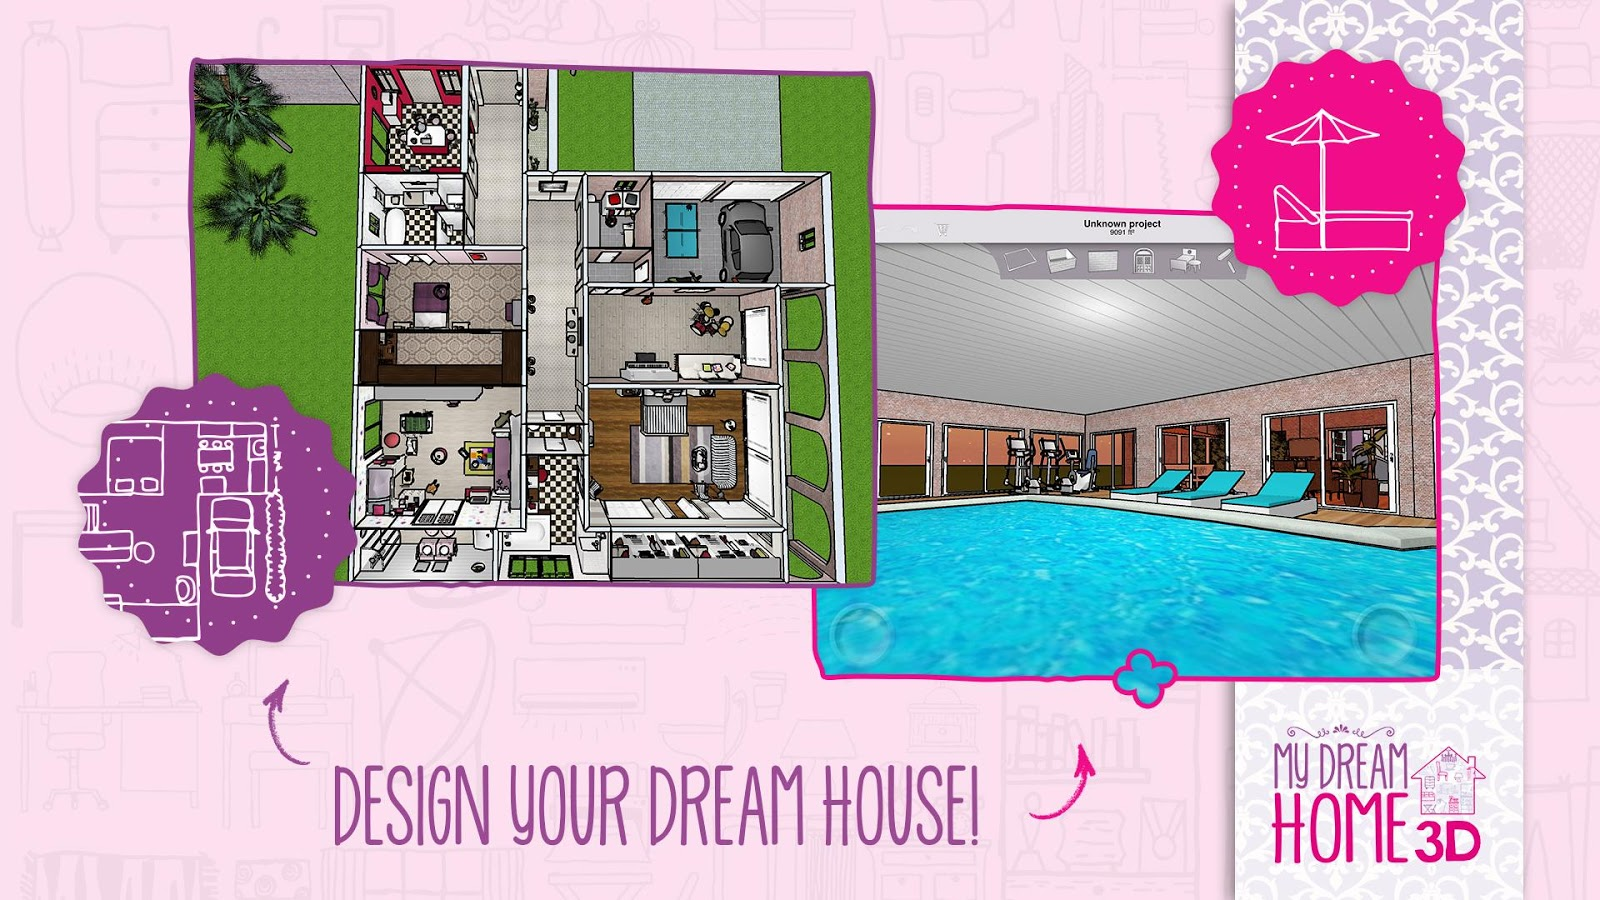 Home design 3d my dream home android apps on google play for 3d house design app